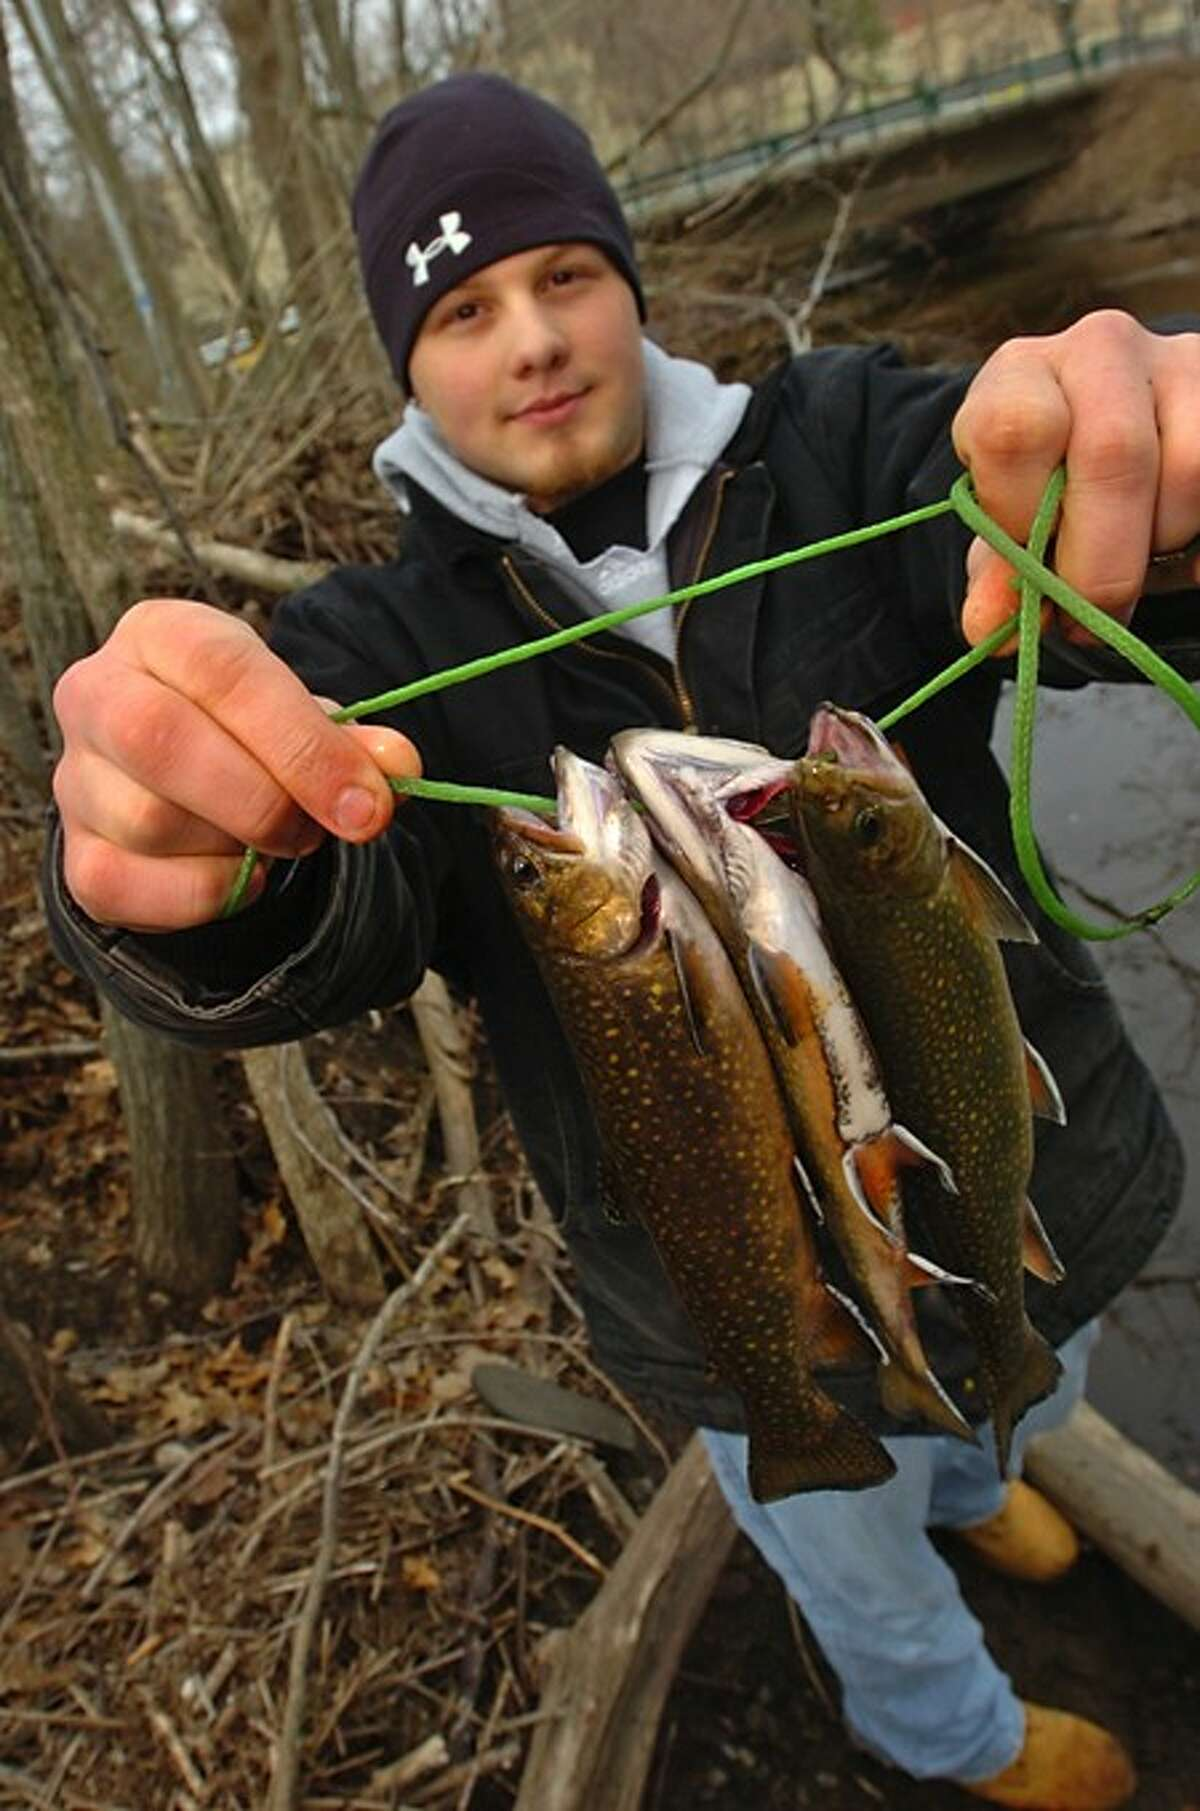 Chris Puglisi shows off his catch after fishing on the Norwalk River in Wilton Saturday during the opening day of trout season. Hour photo / Erik Trautmann